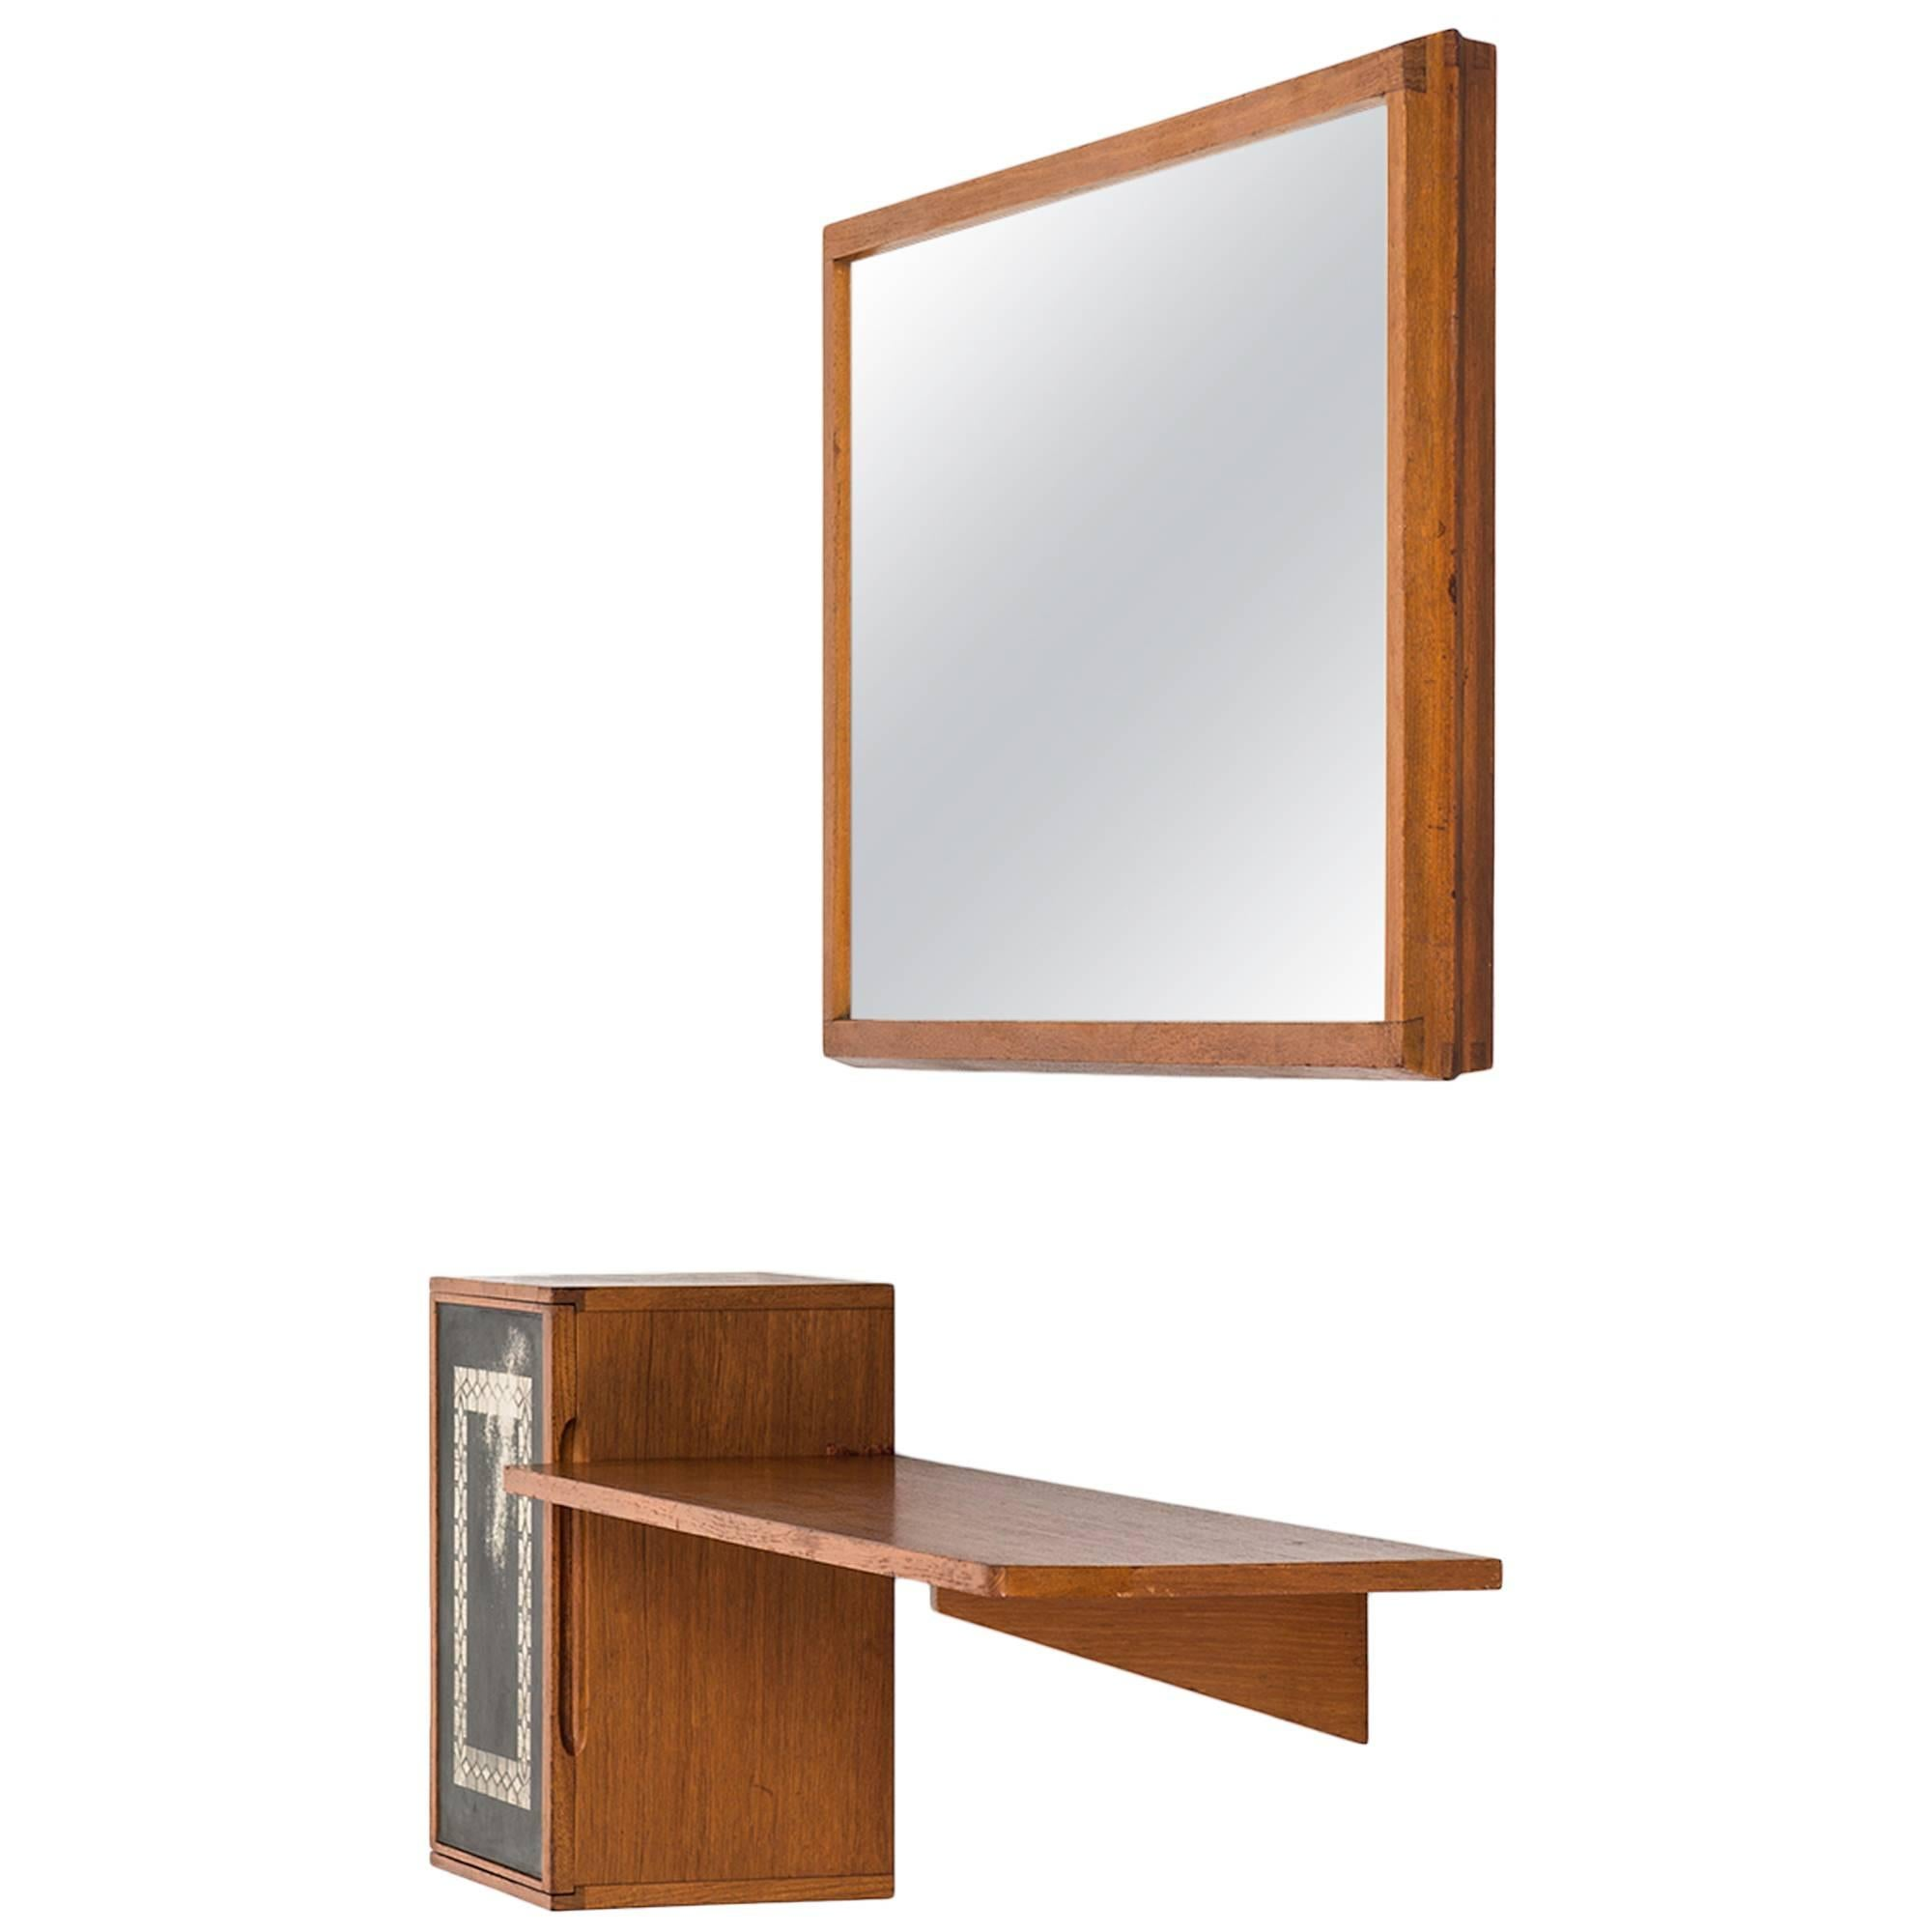 Hans-Agne Jakobsson Hall Furniture with Mirror in Teak